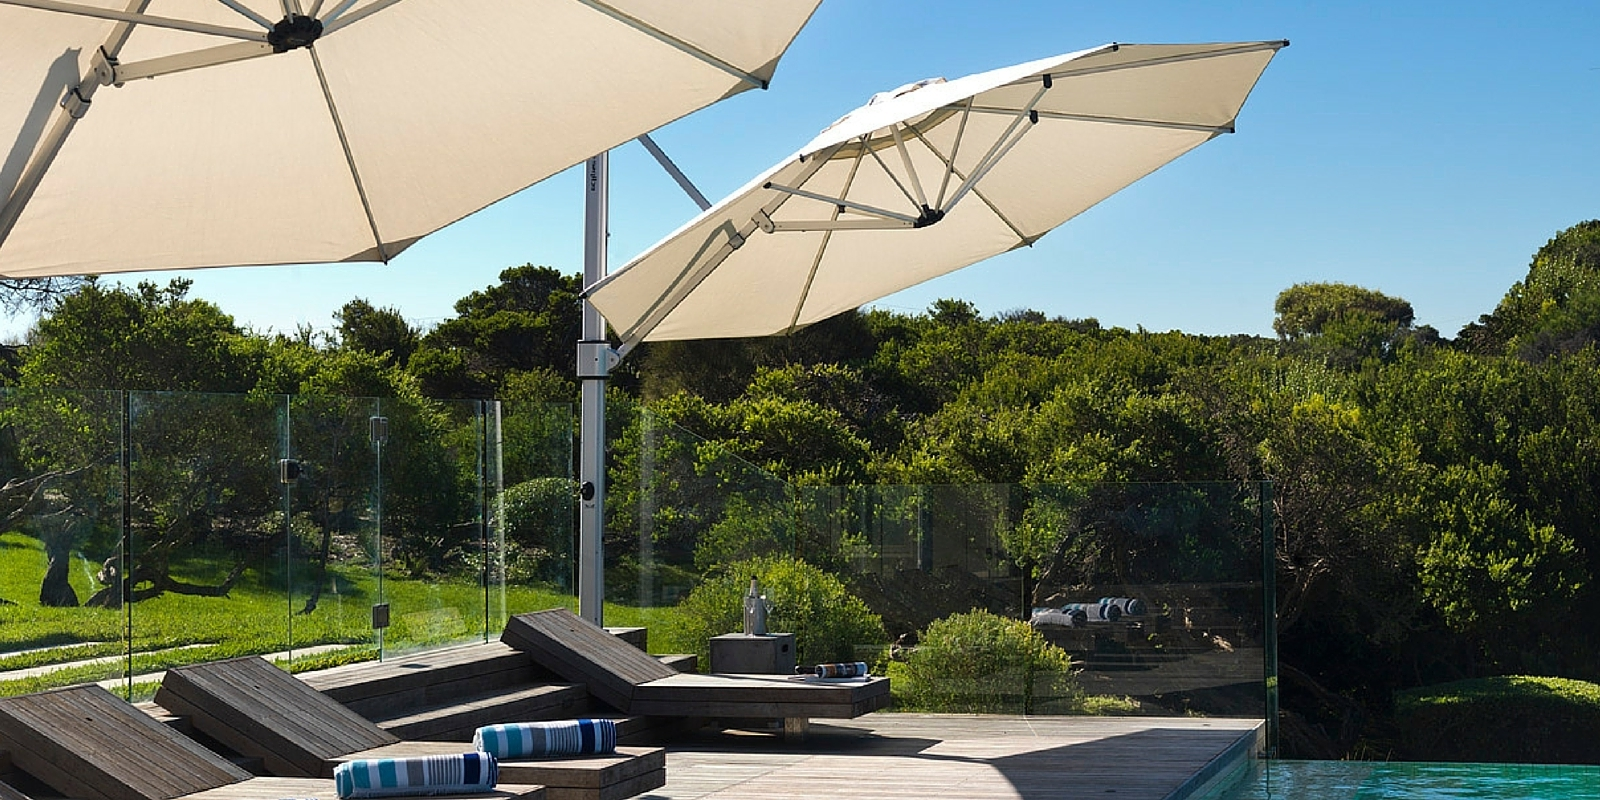 Widely Used Stay Cool With Outdoor Umbrellas With Regard To Patio Umbrellas With Wheels (View 20 of 20)